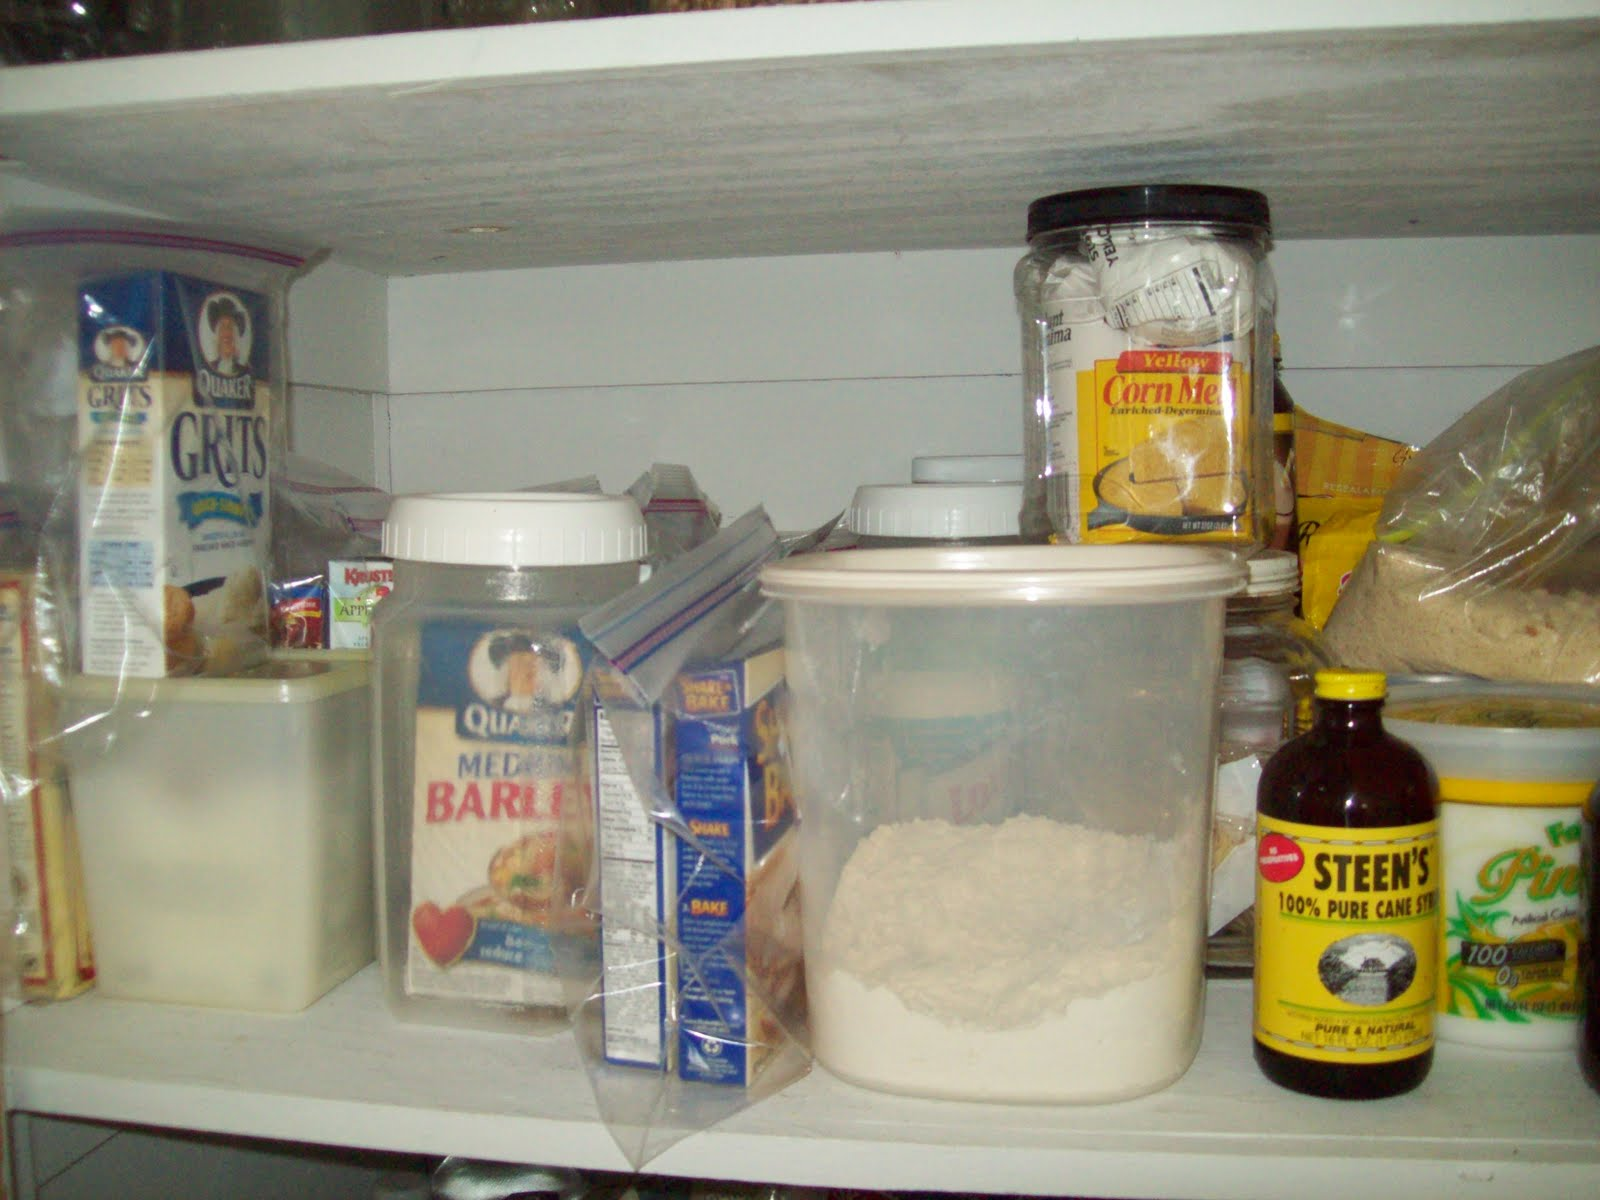 out how hack of what cupboard do kitchen your keeping get bugs bug in to when rid free cupboards invade thrive blog pantry market